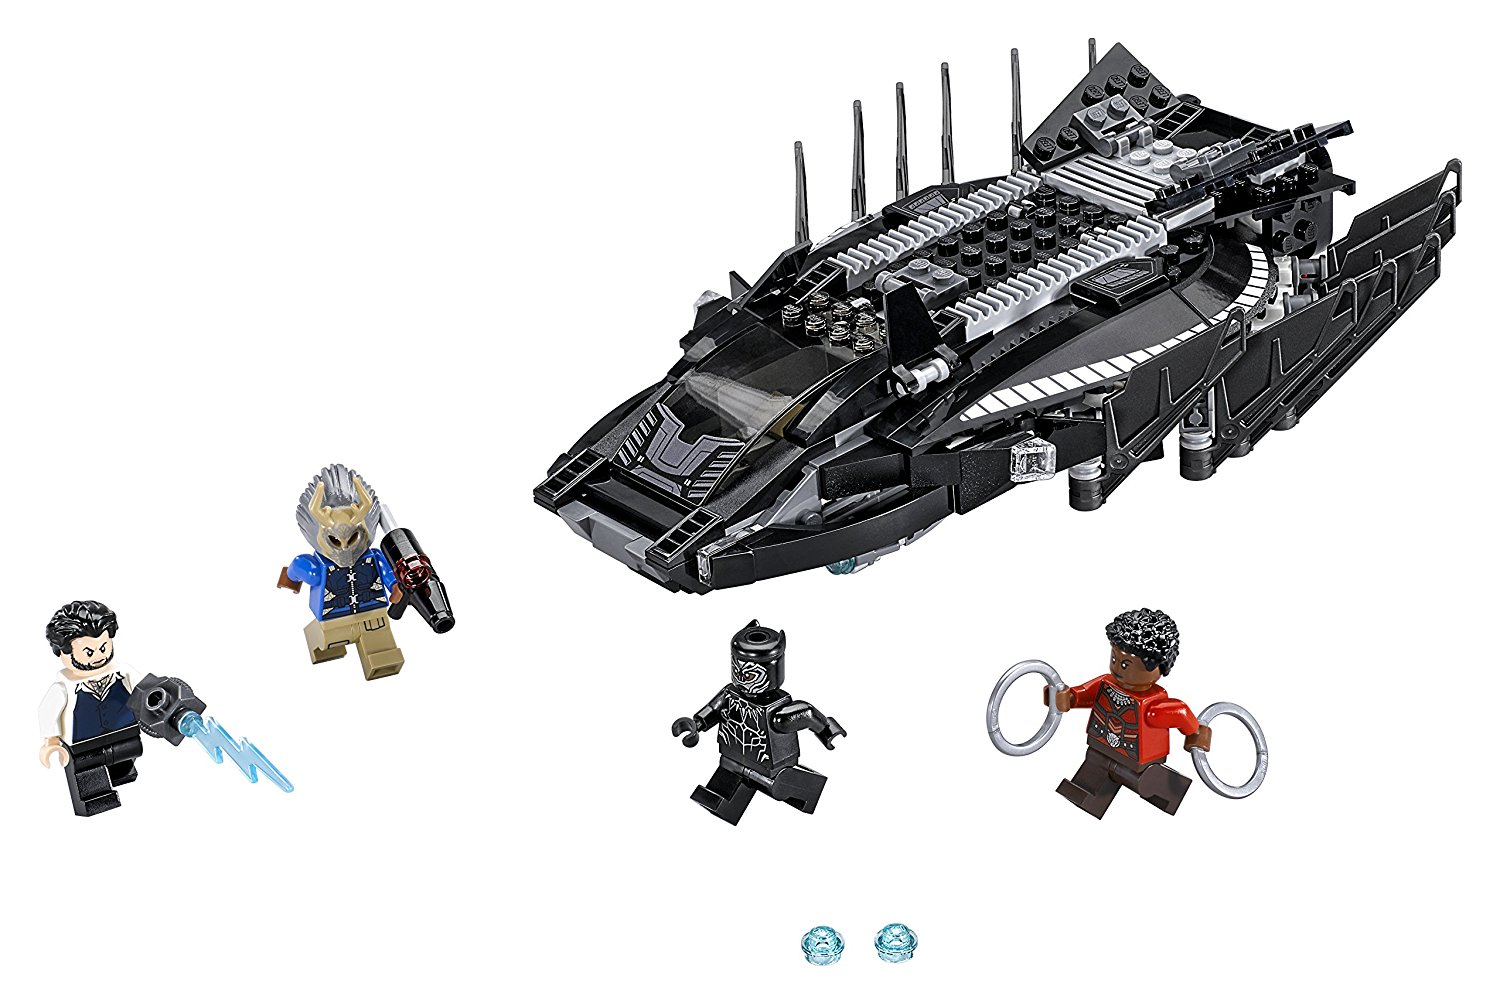 LEGO Black Panther Movie Sets Up for Order & Photos ...